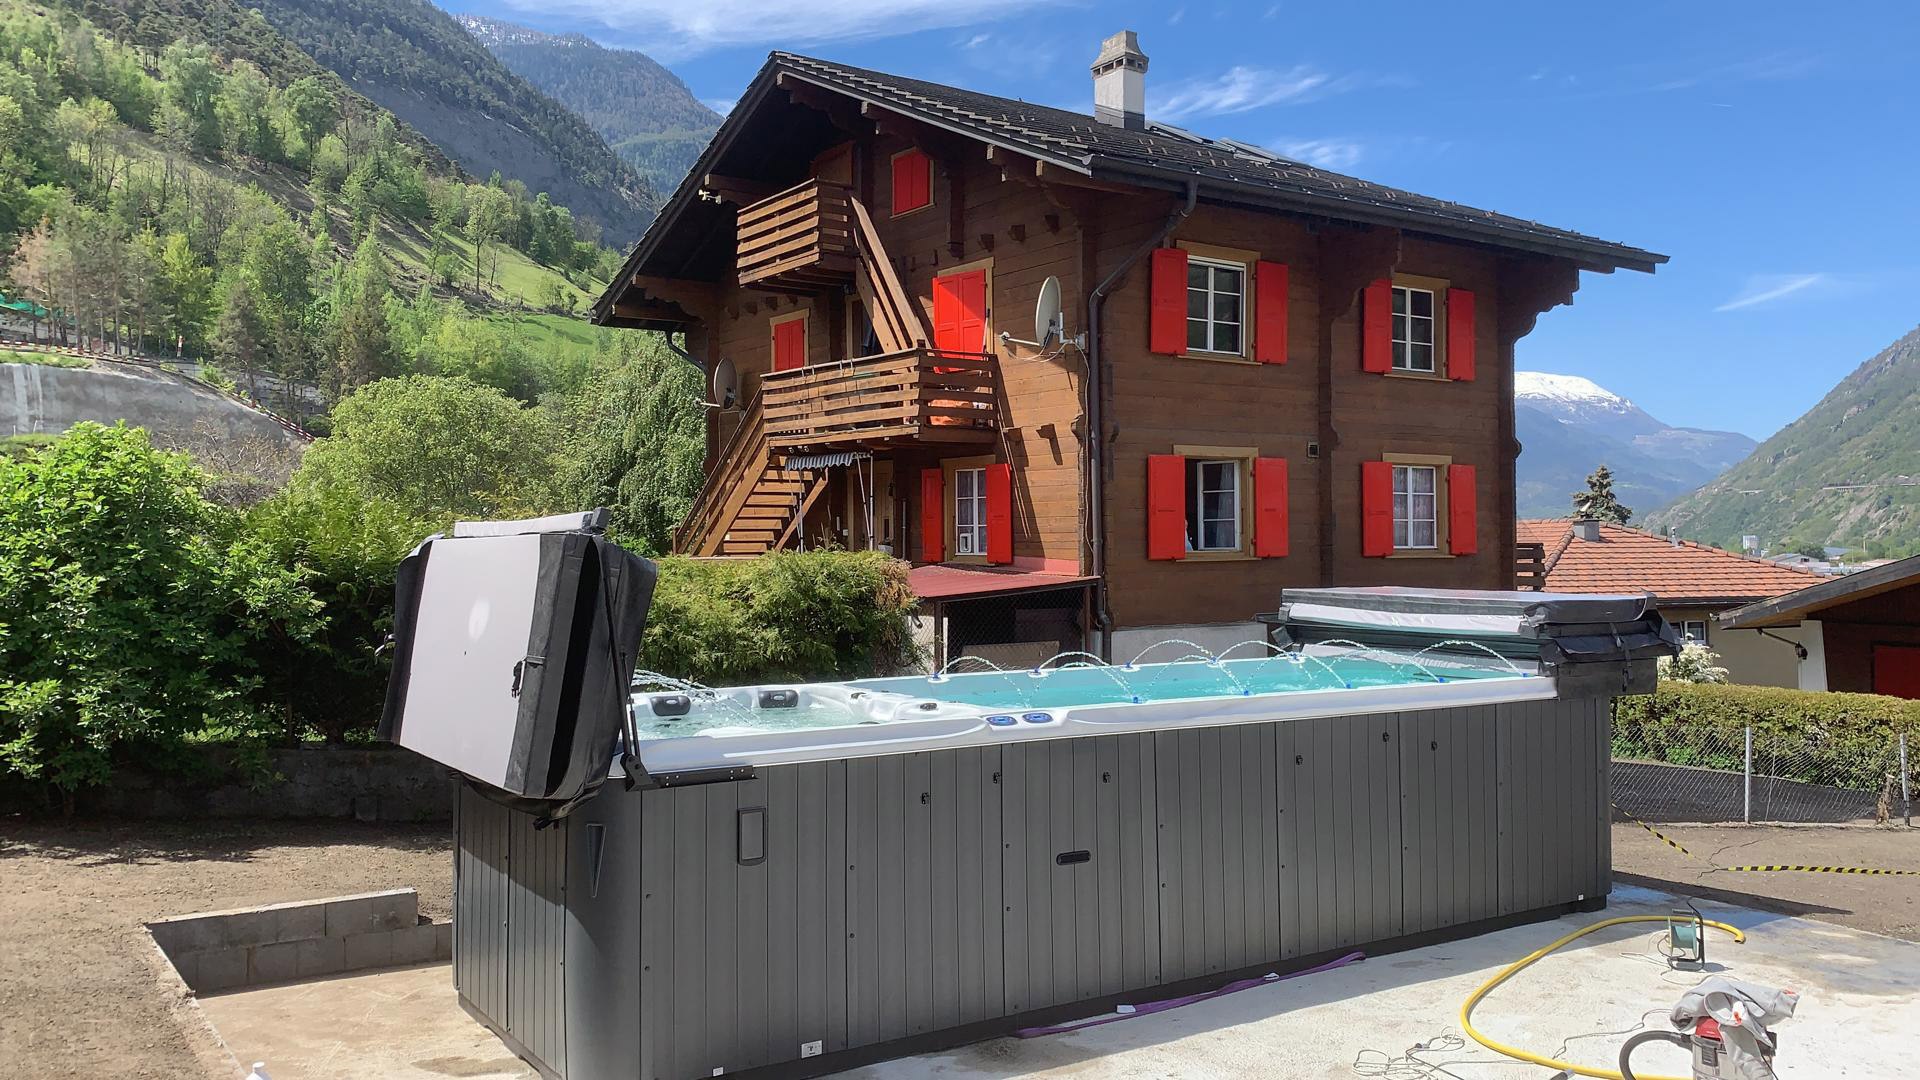 Arrigato-Referenz: Swim Spa vor Chalet